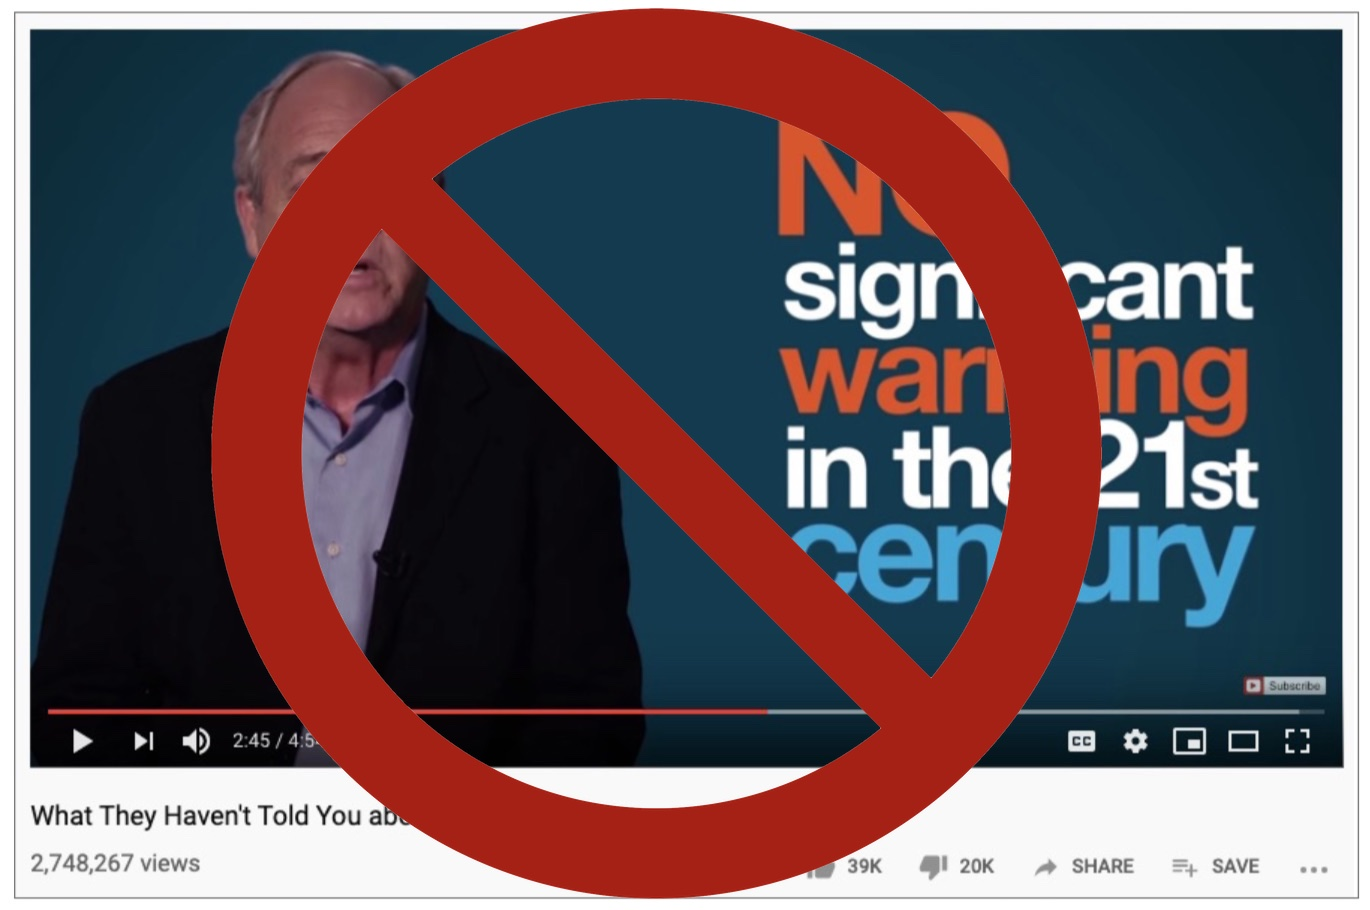 YouTube's algorithm is pushing climate misinformation videos, and their creators are profiting from it